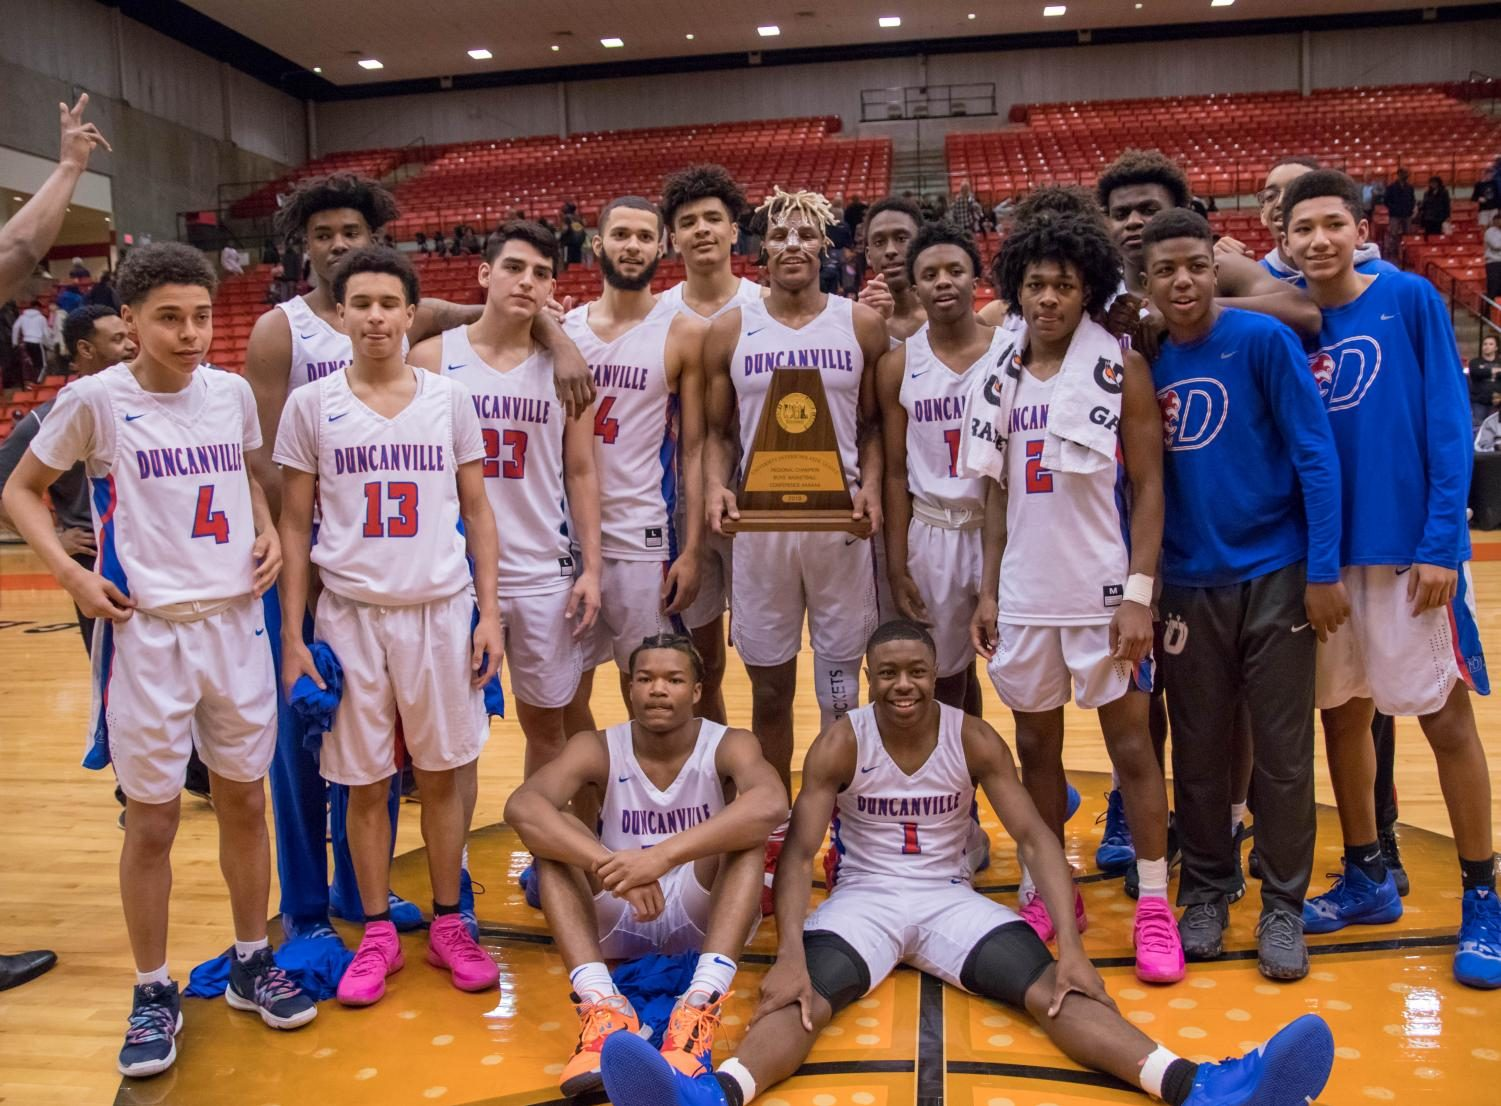 Duncanville captures the Region 1 title and advances to state.